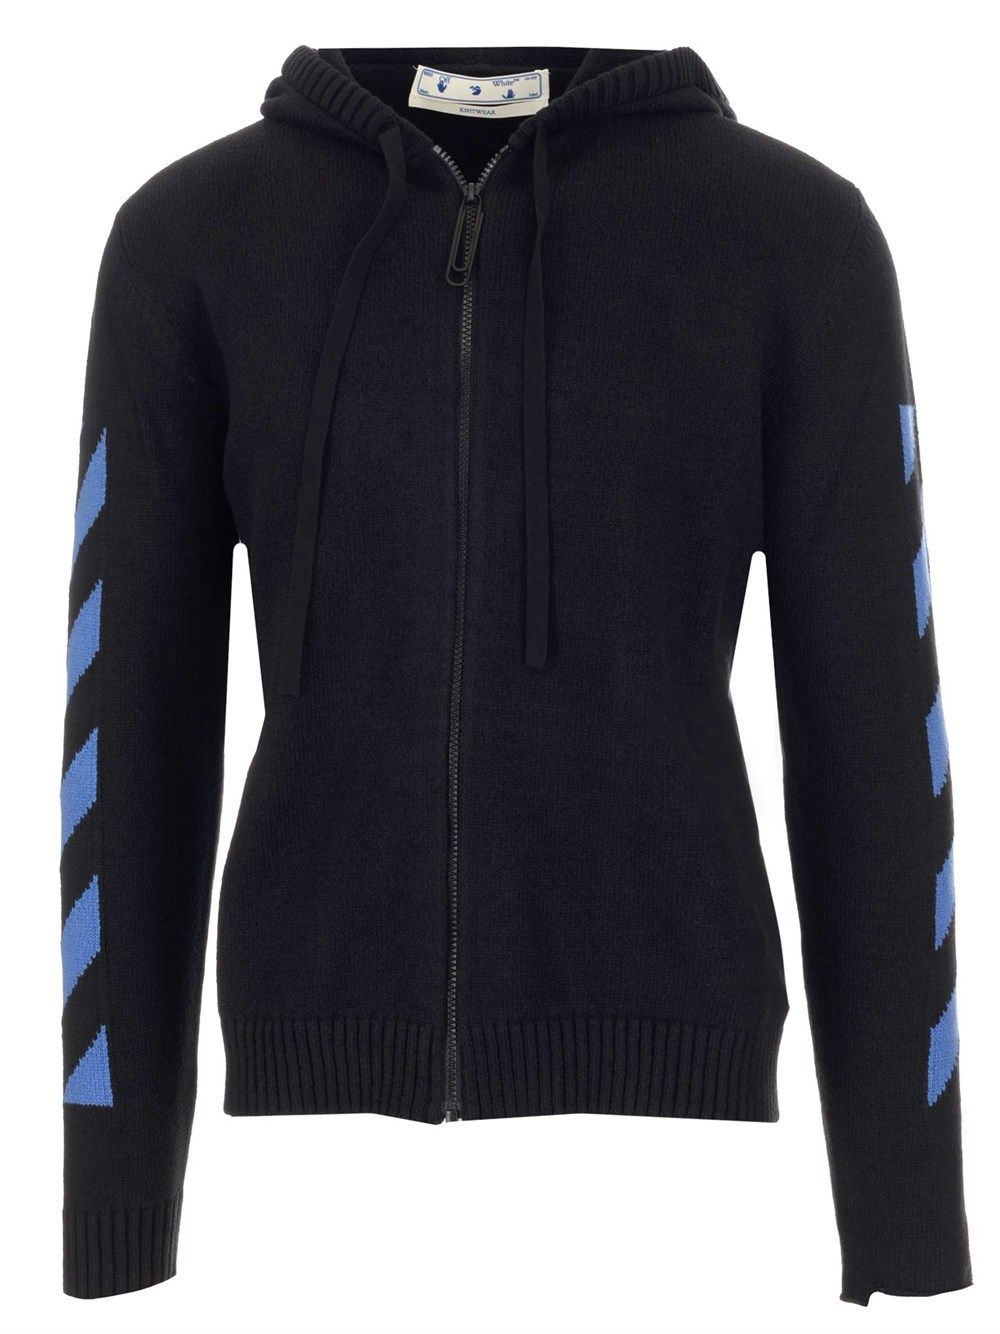 Off-White Cottons OFF-WHITE MEN'S OMHA080S21KNI0011045 BLACK OTHER MATERIALS CARDIGAN